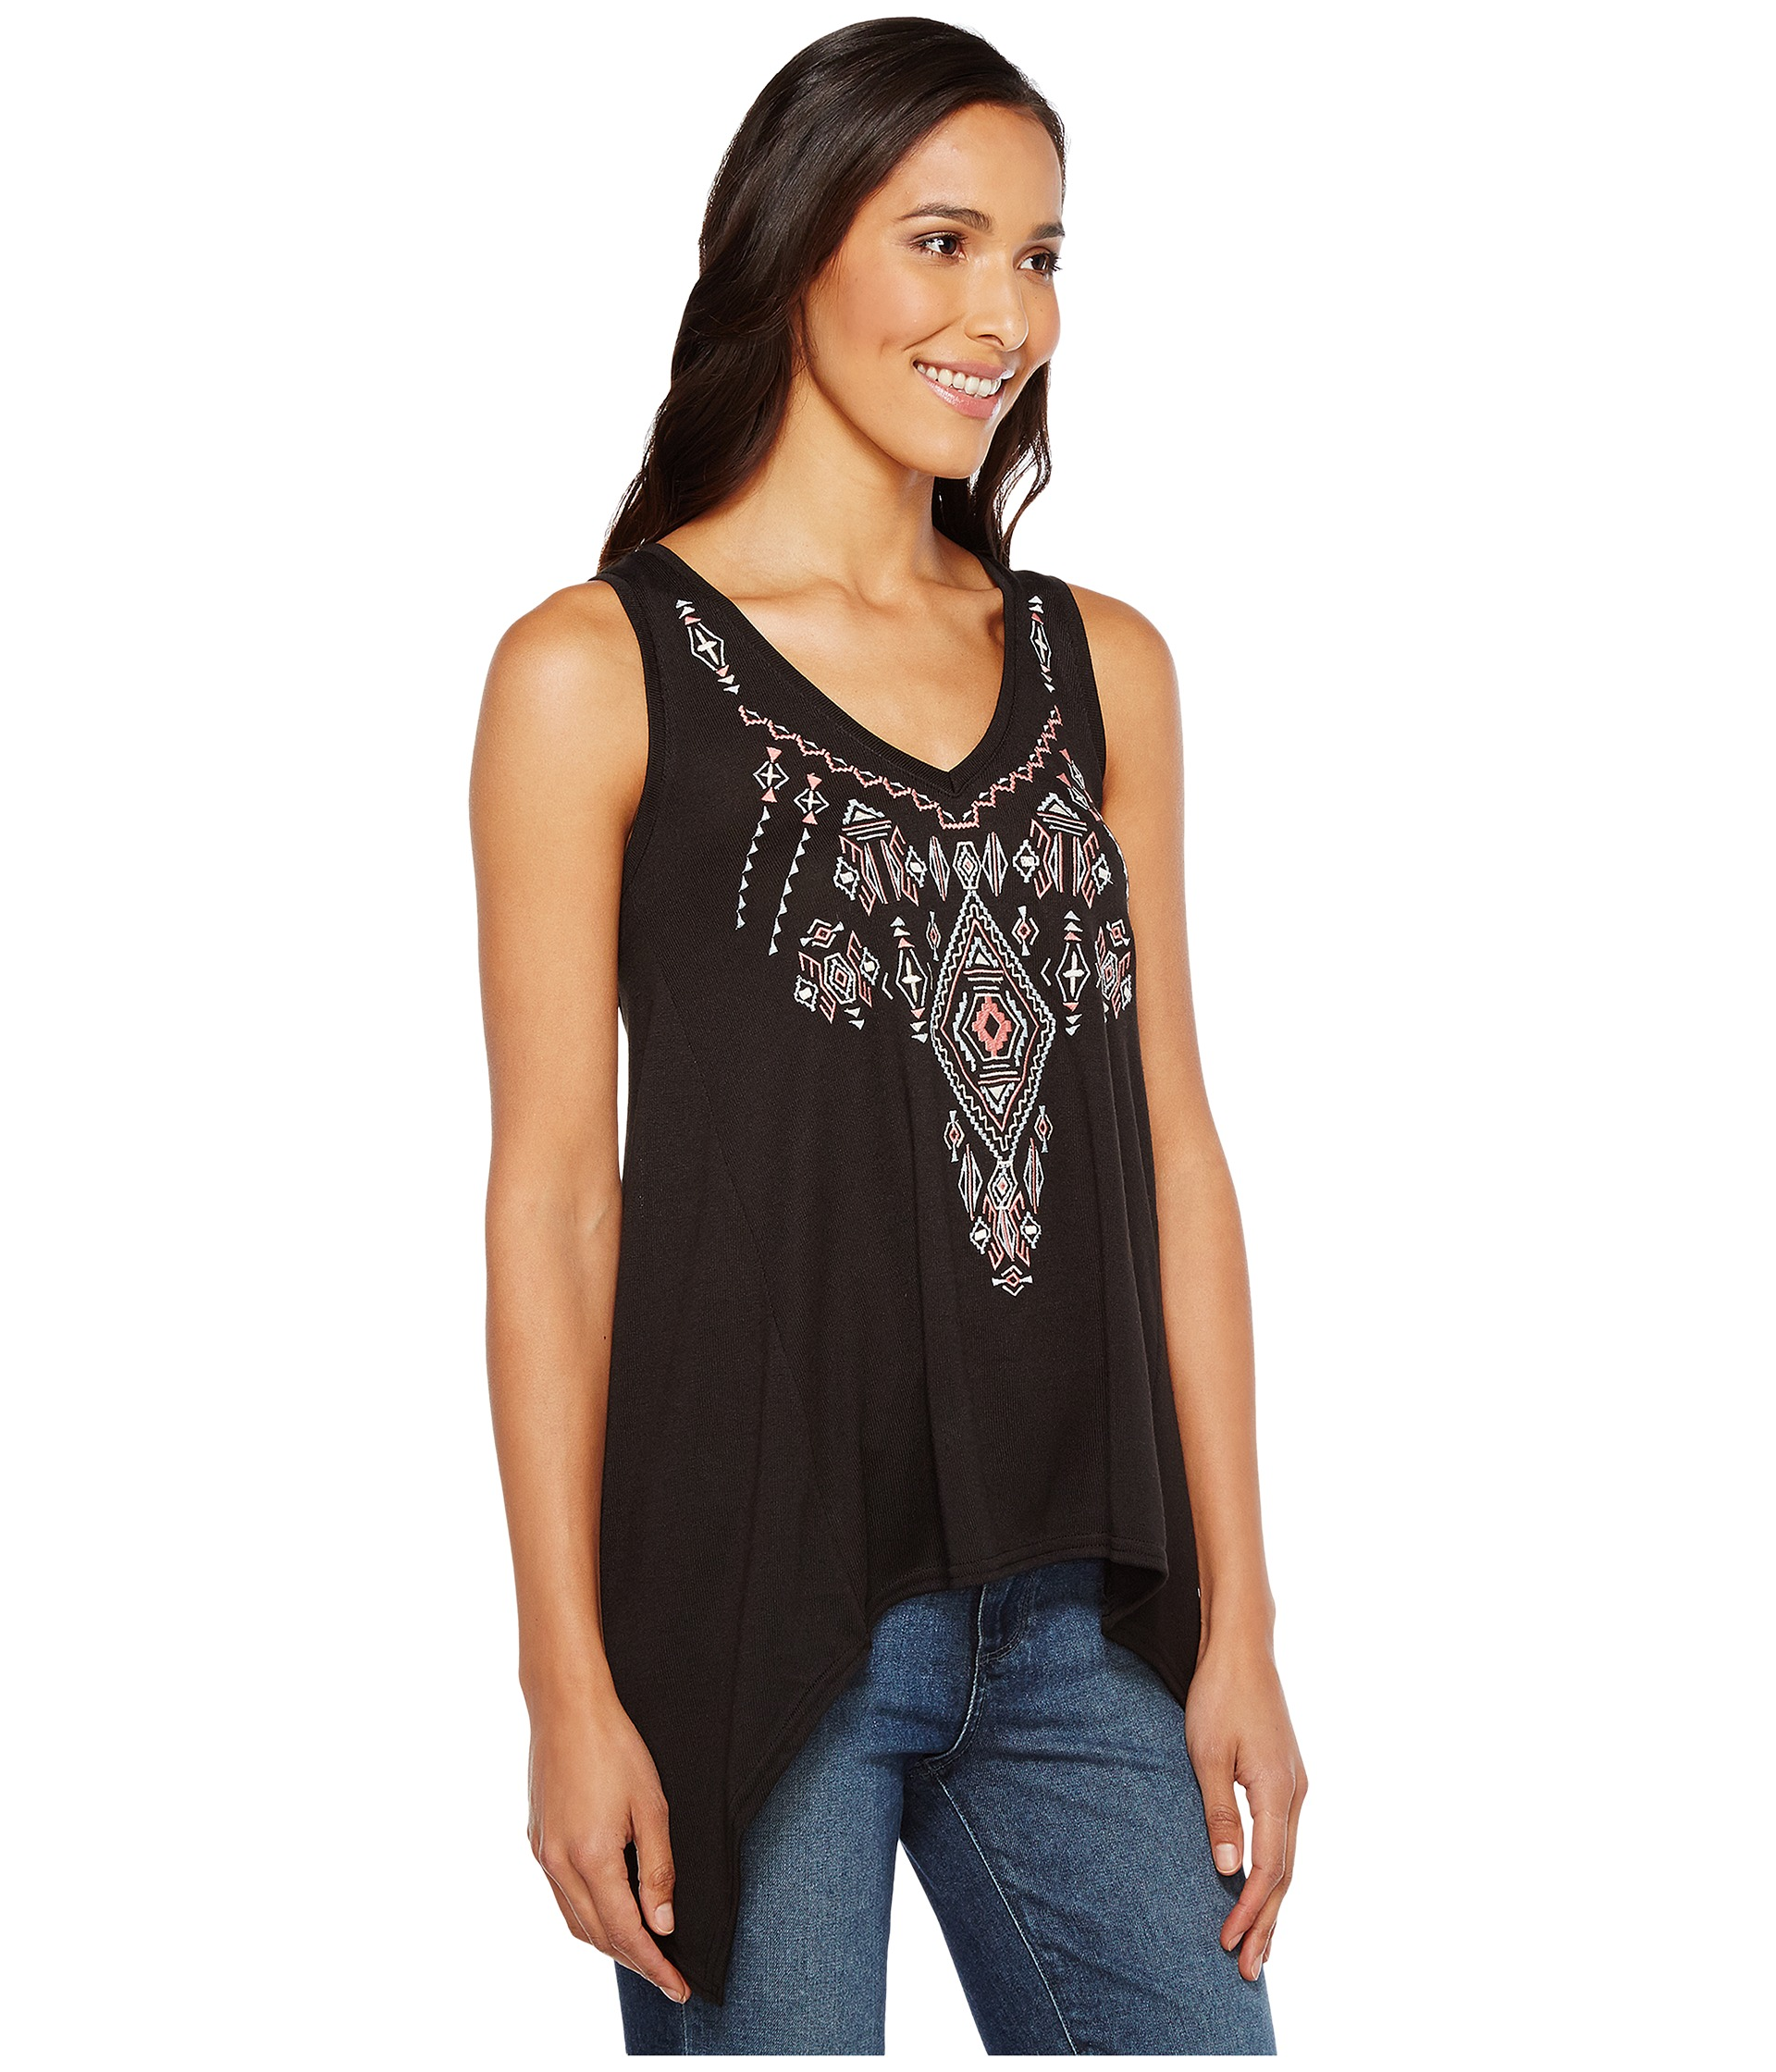 Roper sweater jersey tank top with embroidery at